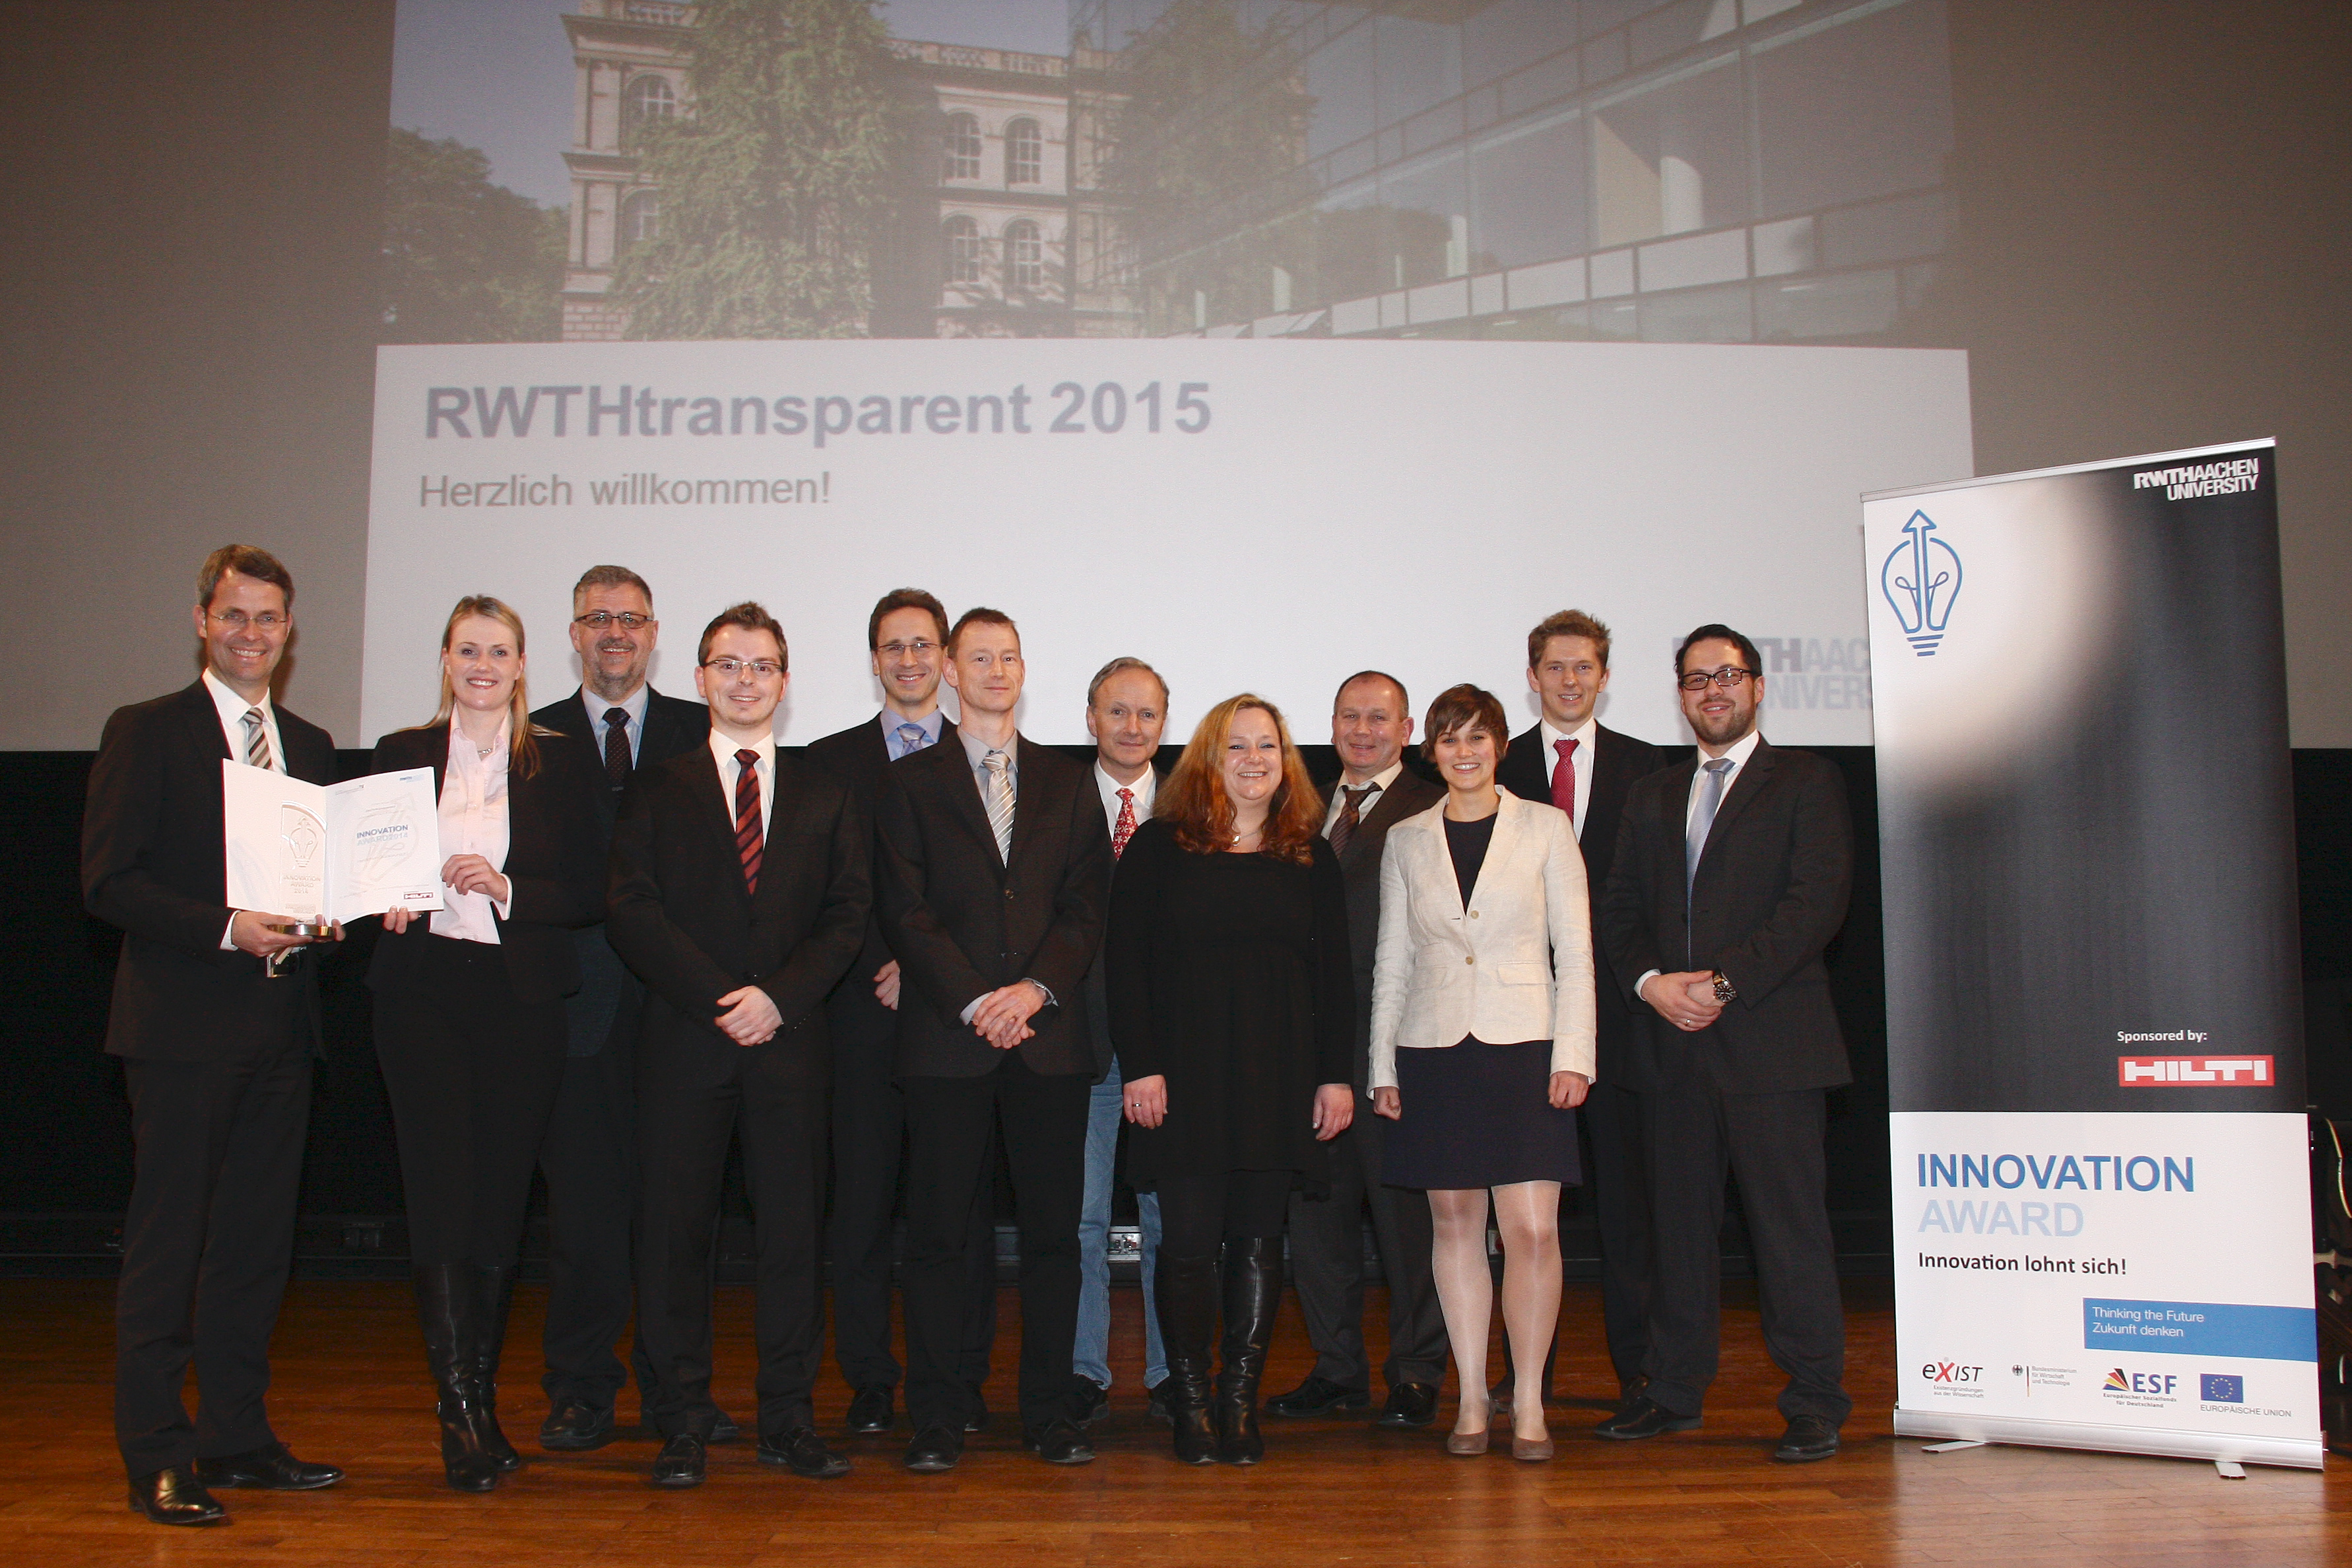 IAS wins 2nd place in RWTH Aachen University Innovation Award 2014